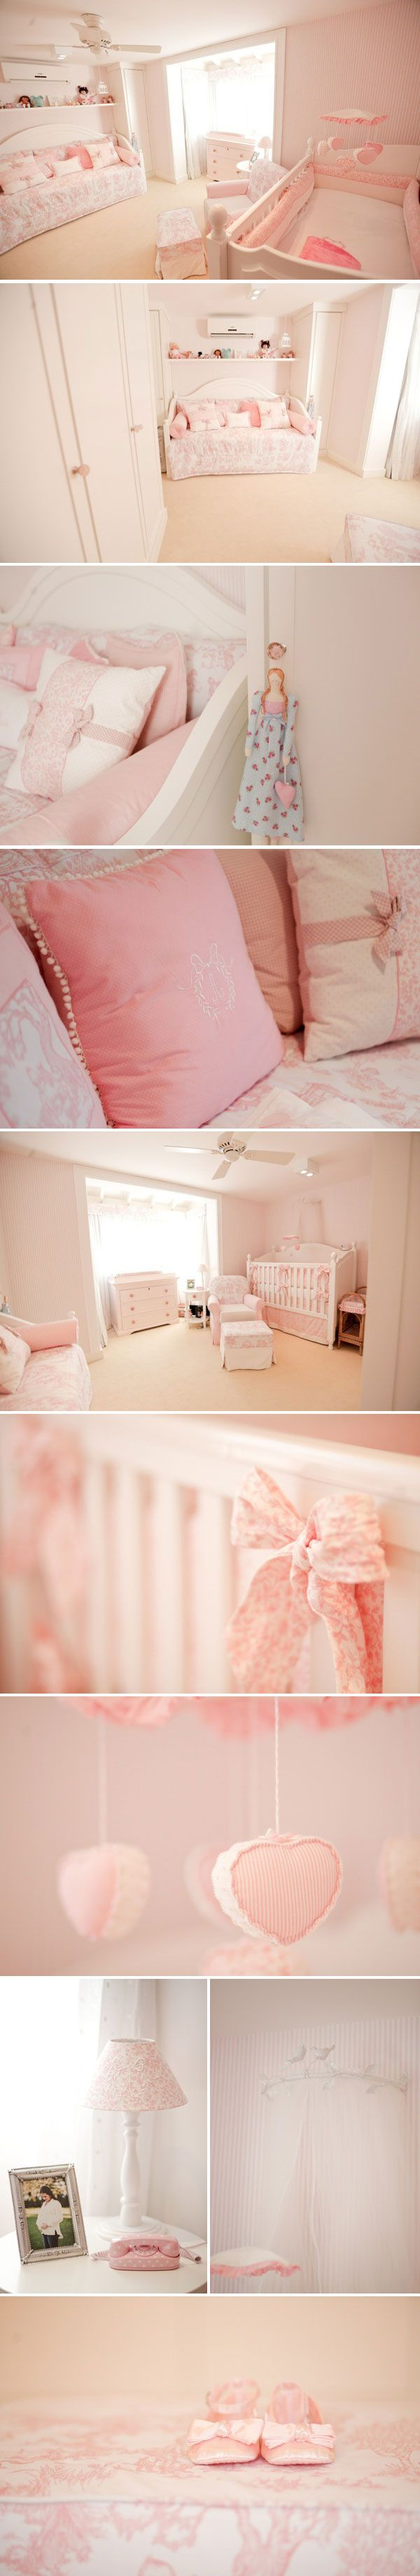 Decor do quartinho da Alice #decor #baby